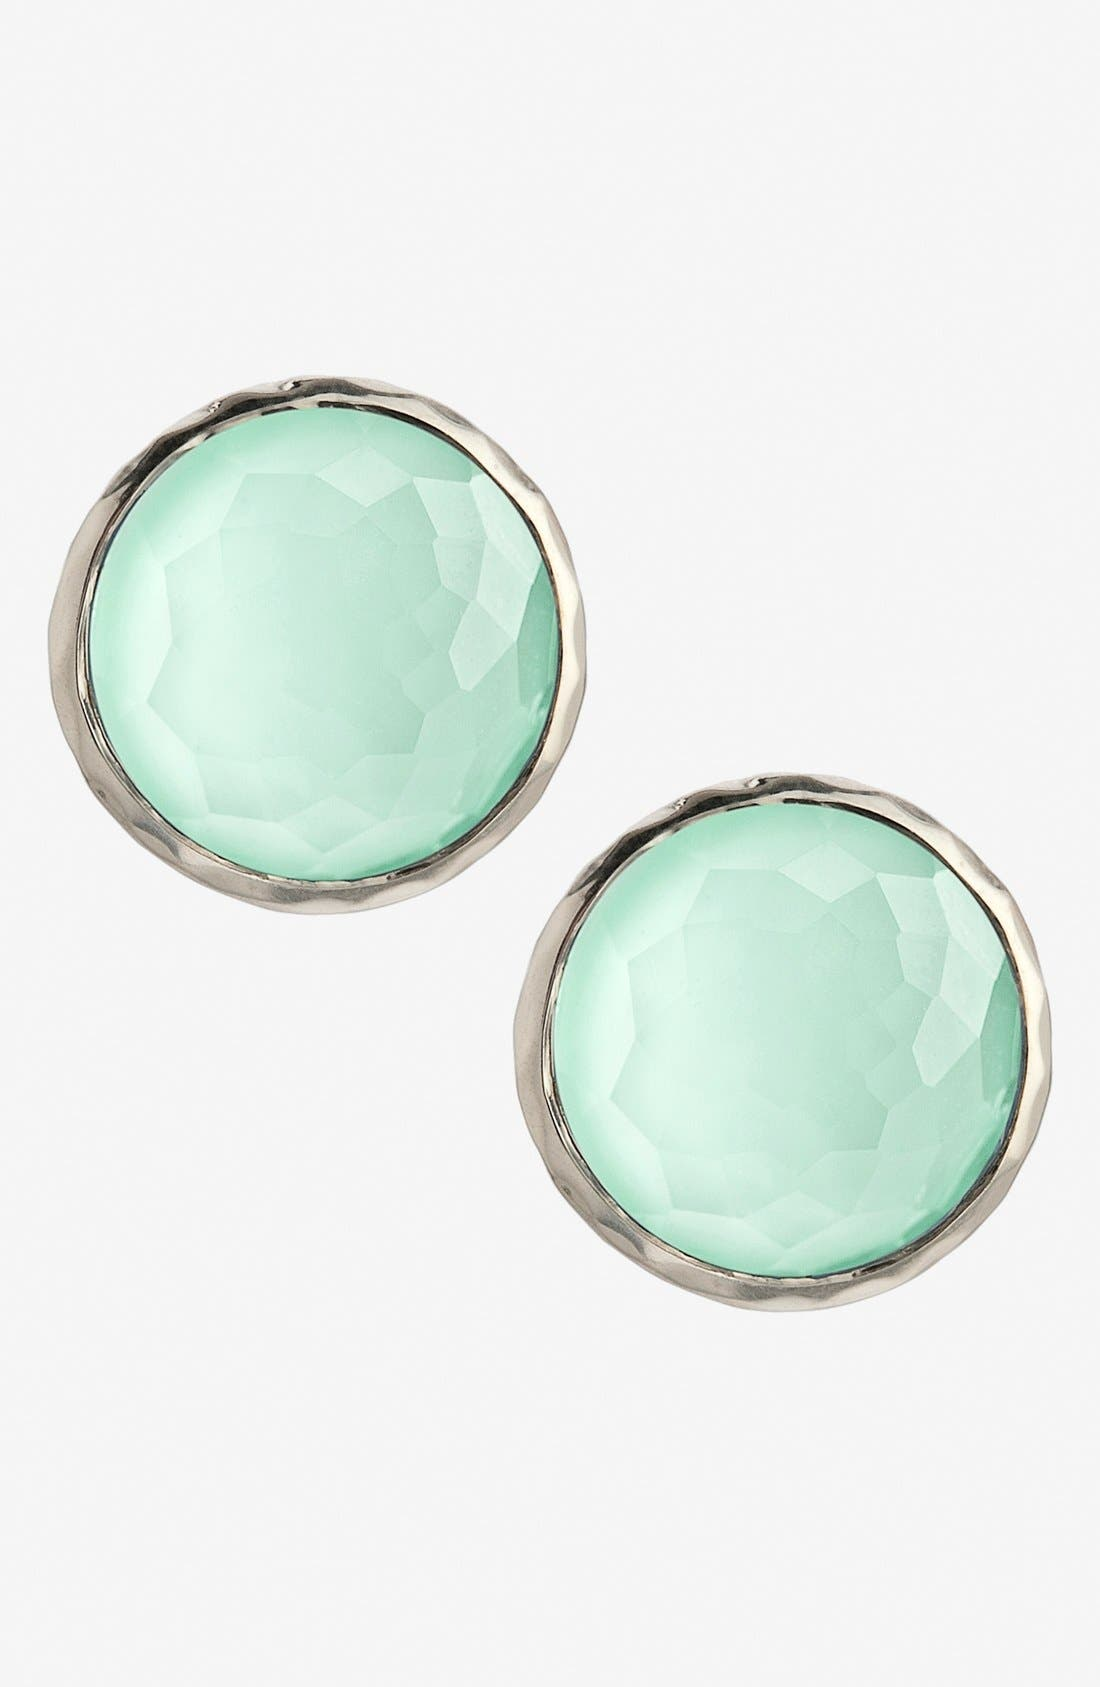 Main Image - Ippolita 'Wonderland - Lollipop' Large Stud Earrings